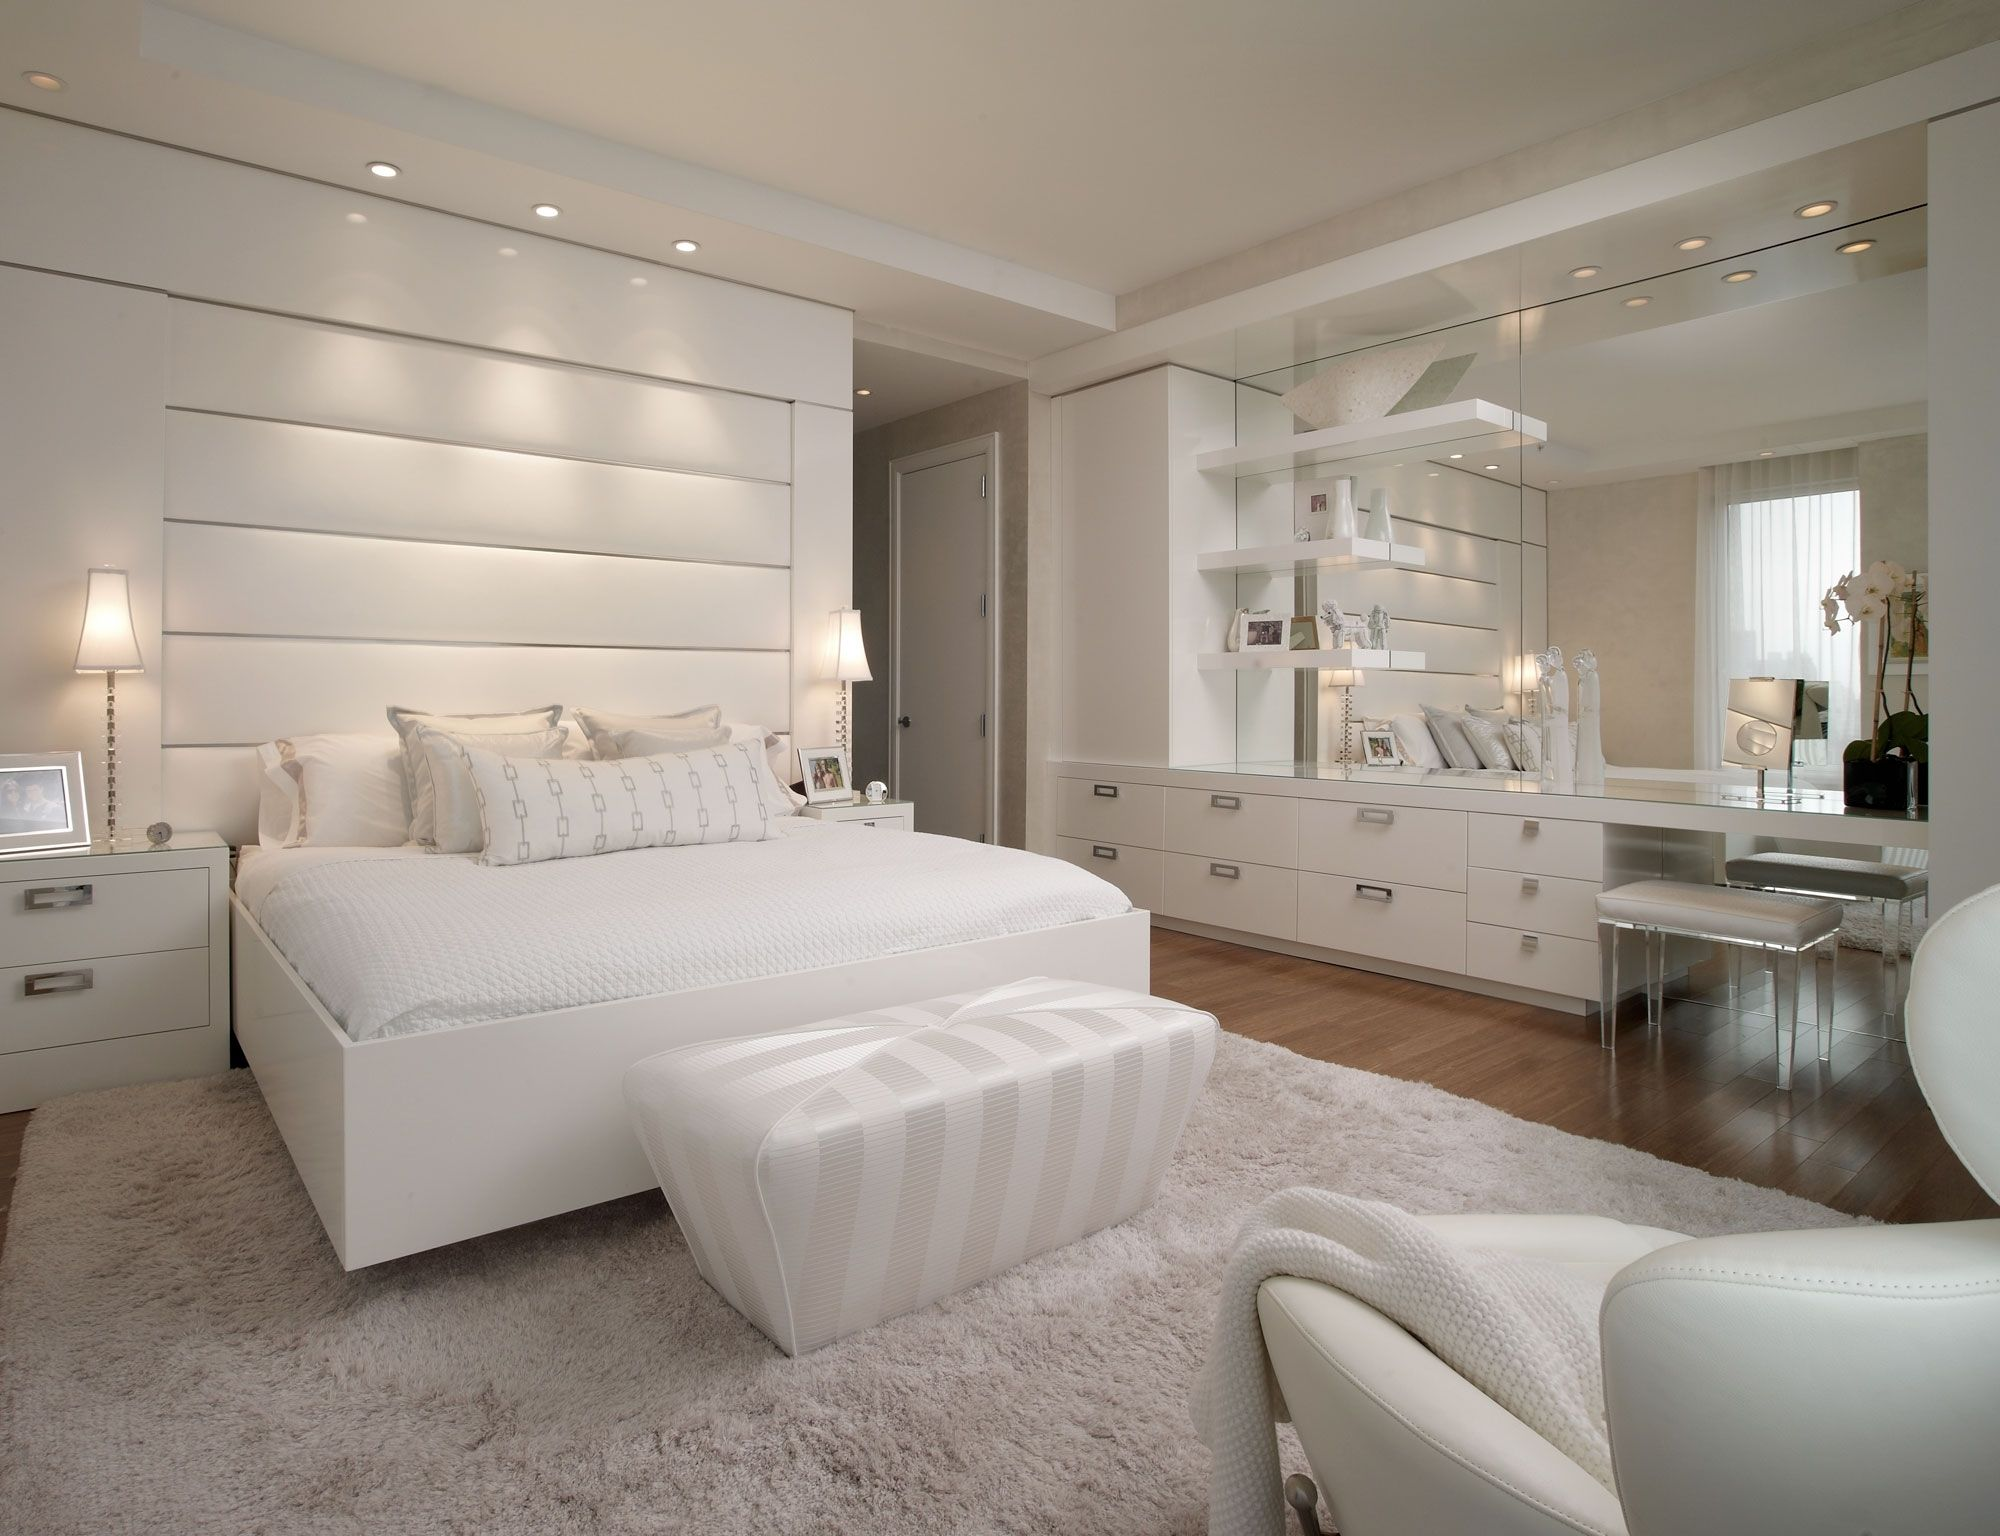 15 Awesome Designs Of How To Makeover All White Modern Bedroom Glamourous Bedroom Woman Bedroom White Master Bedroom